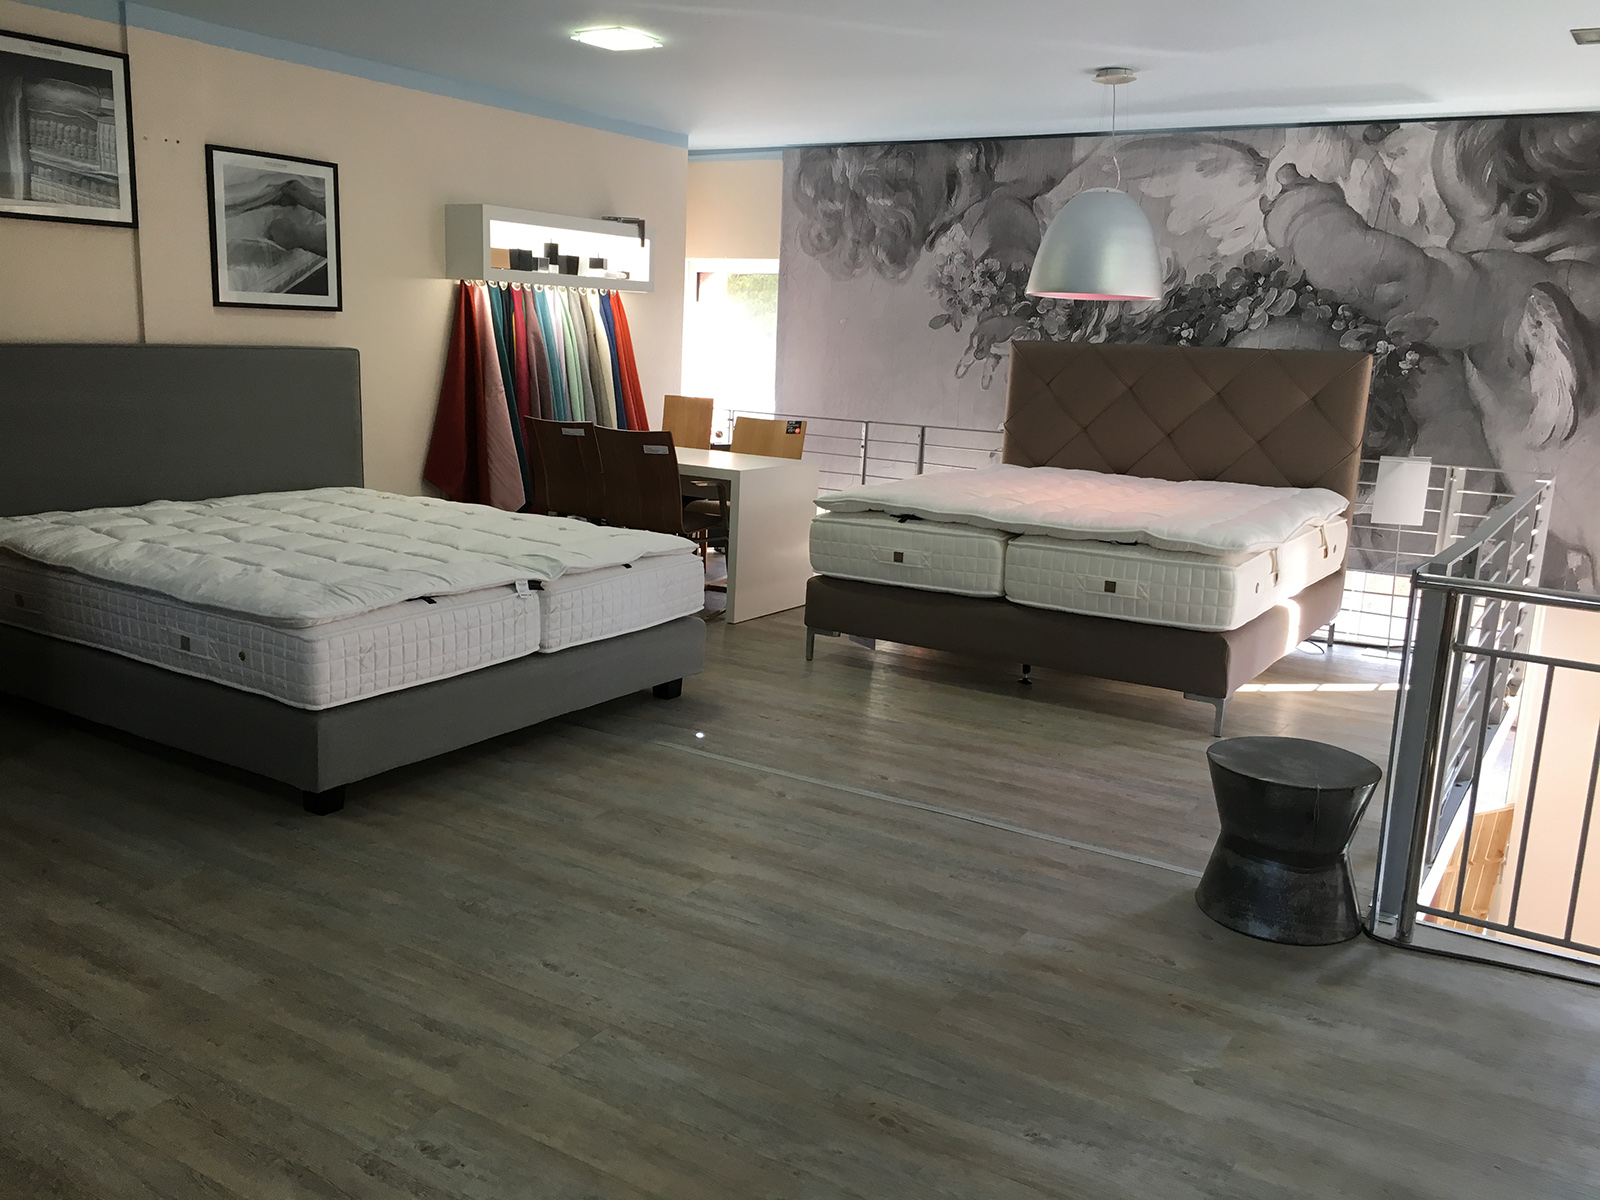 das bett hannover filialen nox brothers. Black Bedroom Furniture Sets. Home Design Ideas